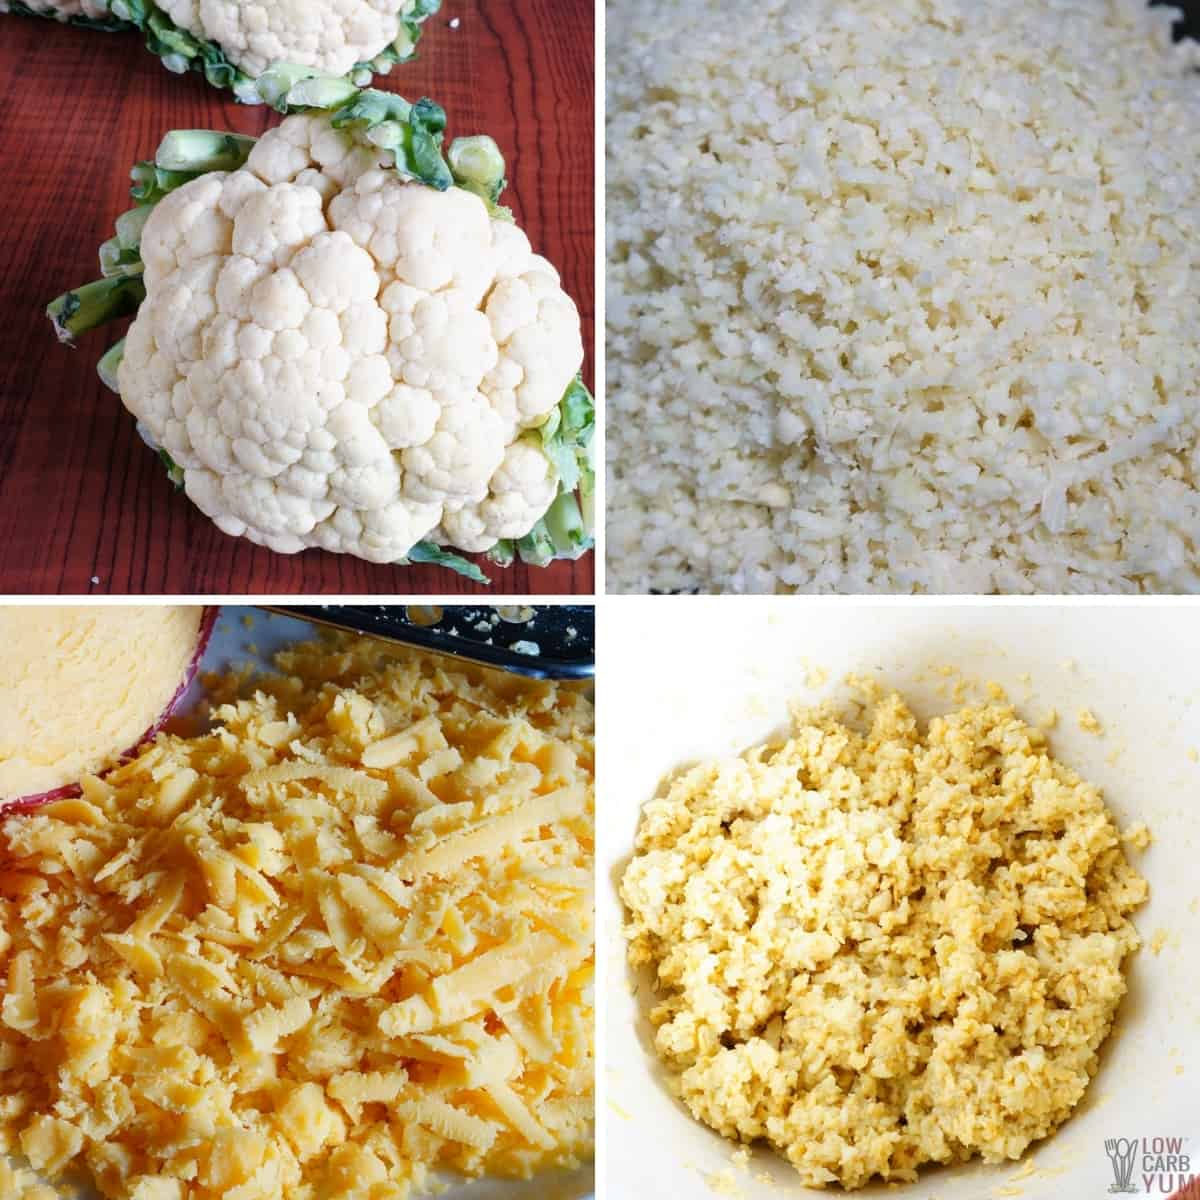 riced cauliflower and grated cheese